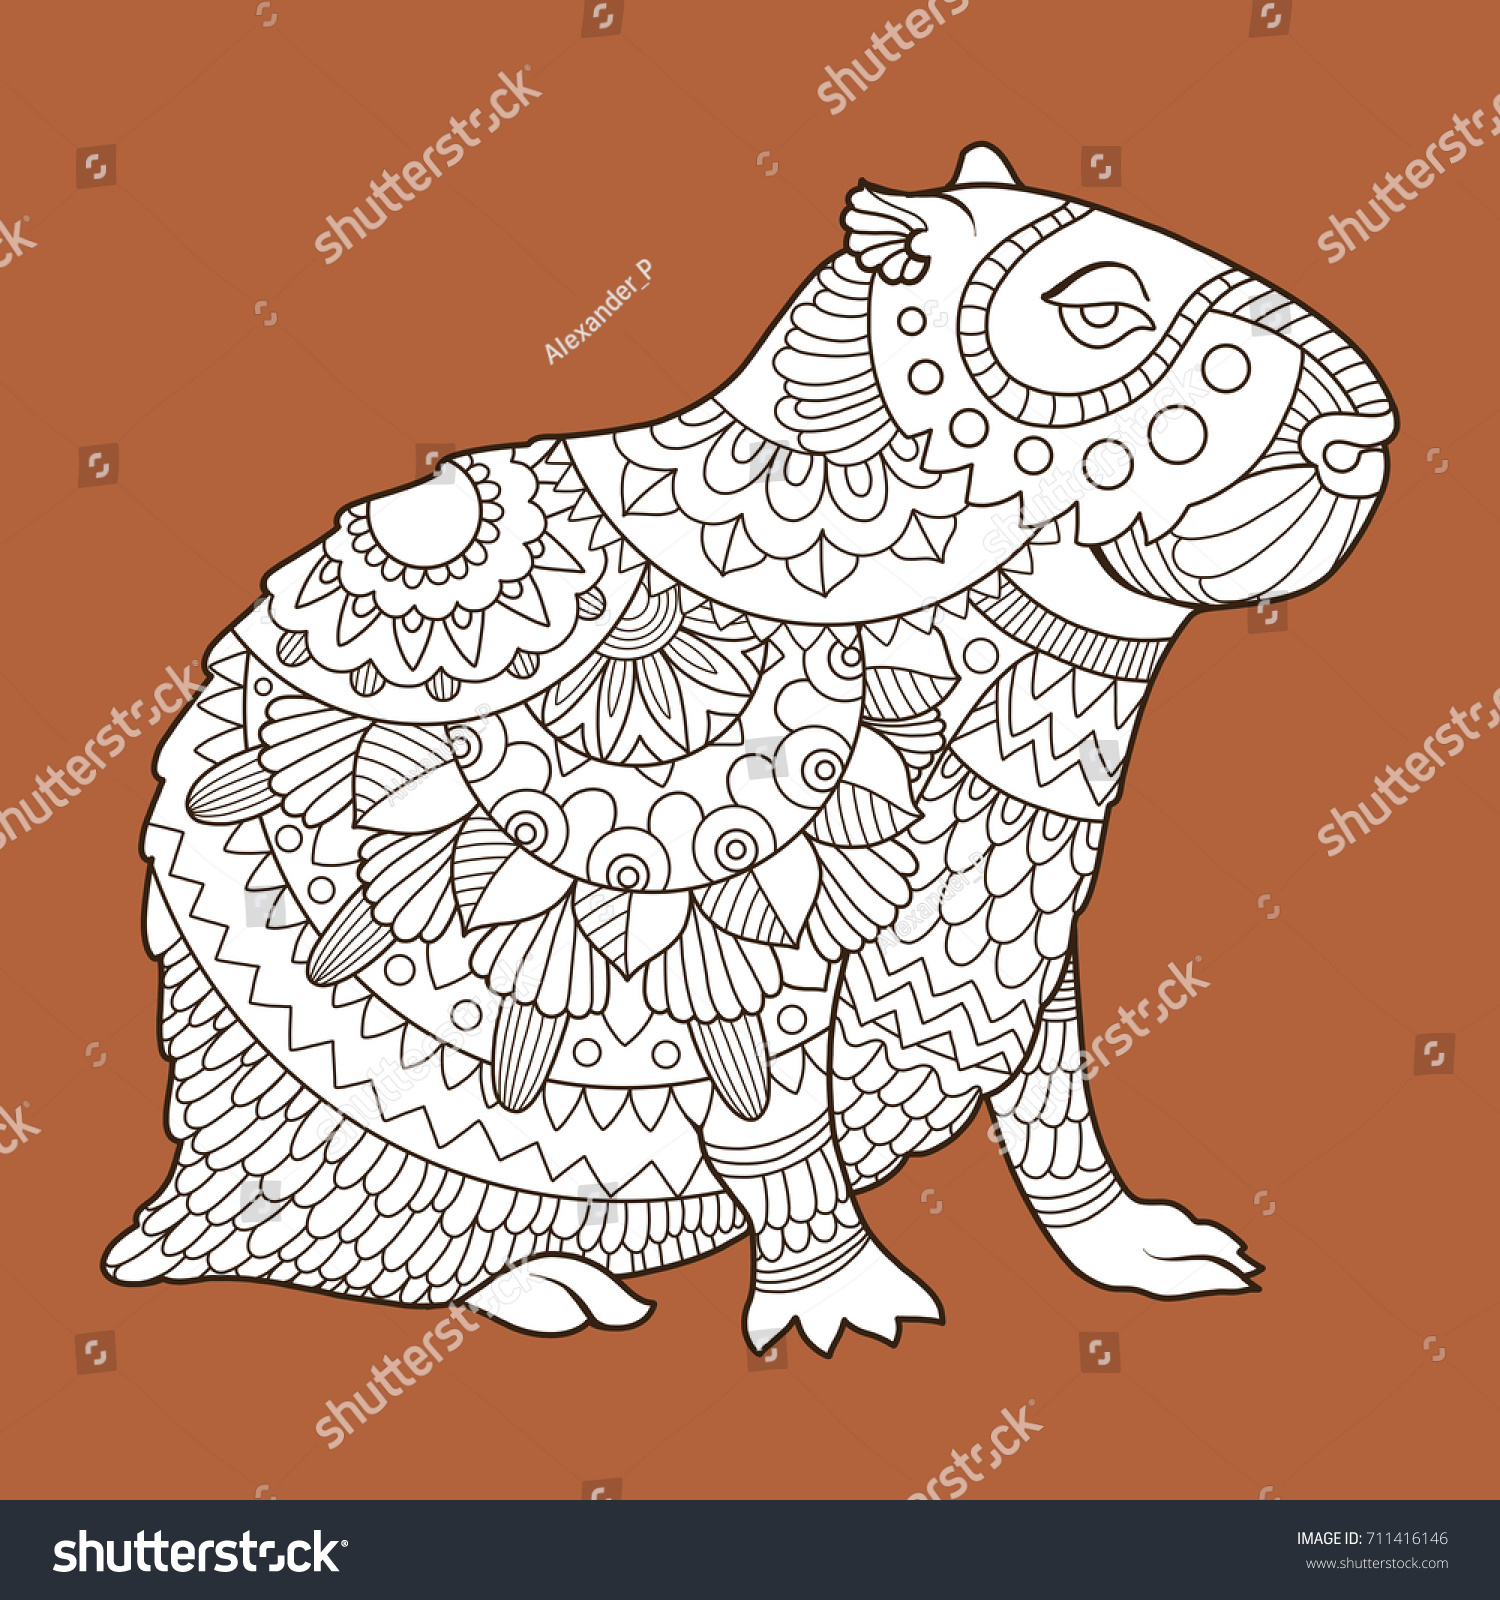 Capybara Rodent Animal Fashion Raster Illustration Ilustración de ...